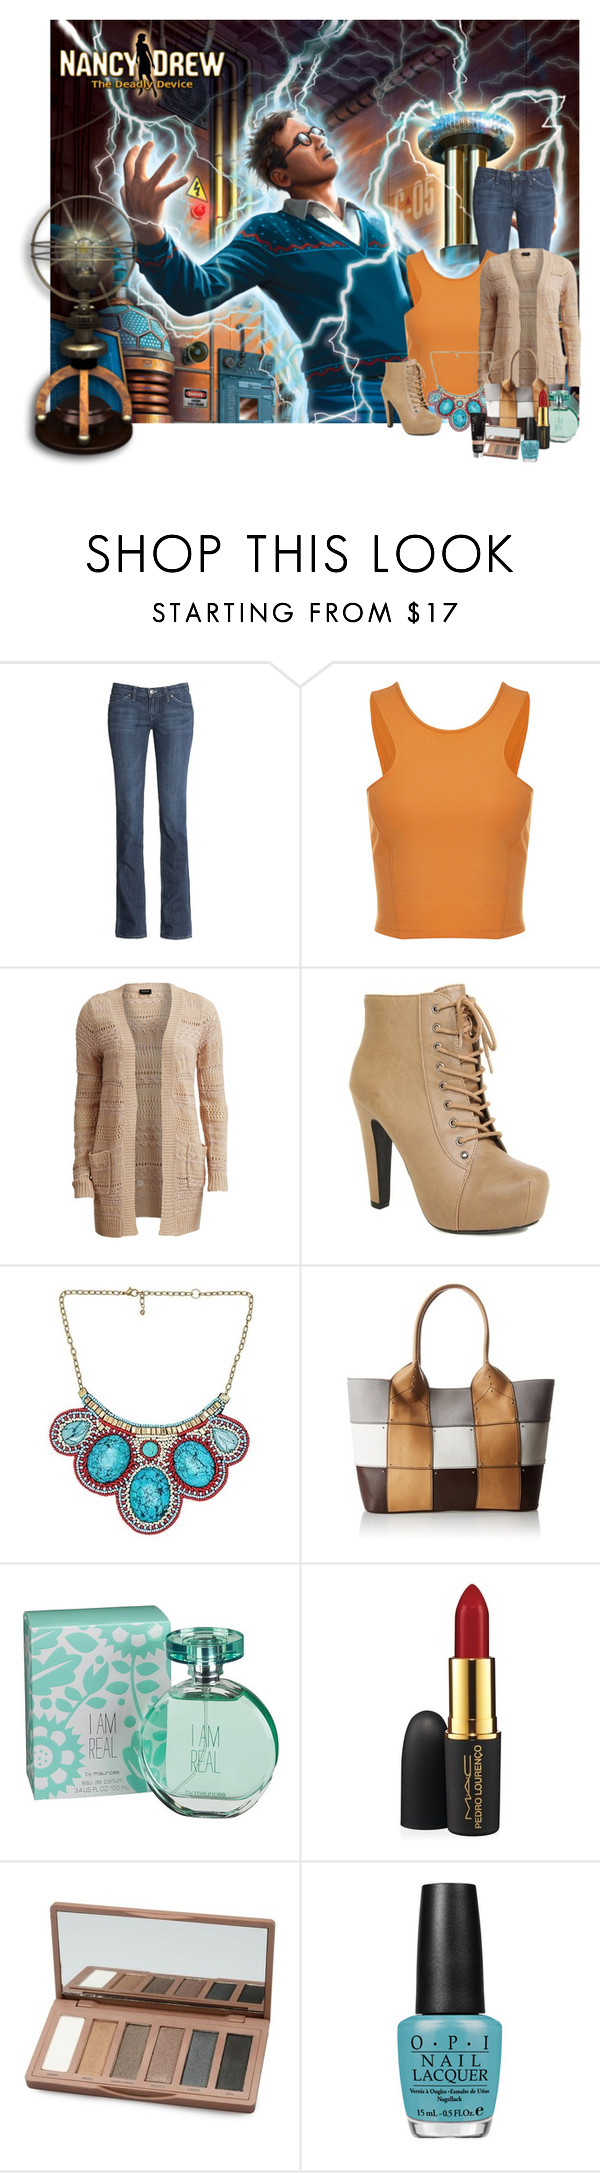 """""""Birthday Set Top 10 No; 9 ND Inspired"""" by stephaniefb ❤ liked on Polyvore featuring VILA, Raga, Oryany Handbags, maurices, MAC Cosmetics, OPI, Becca and nancydrew"""